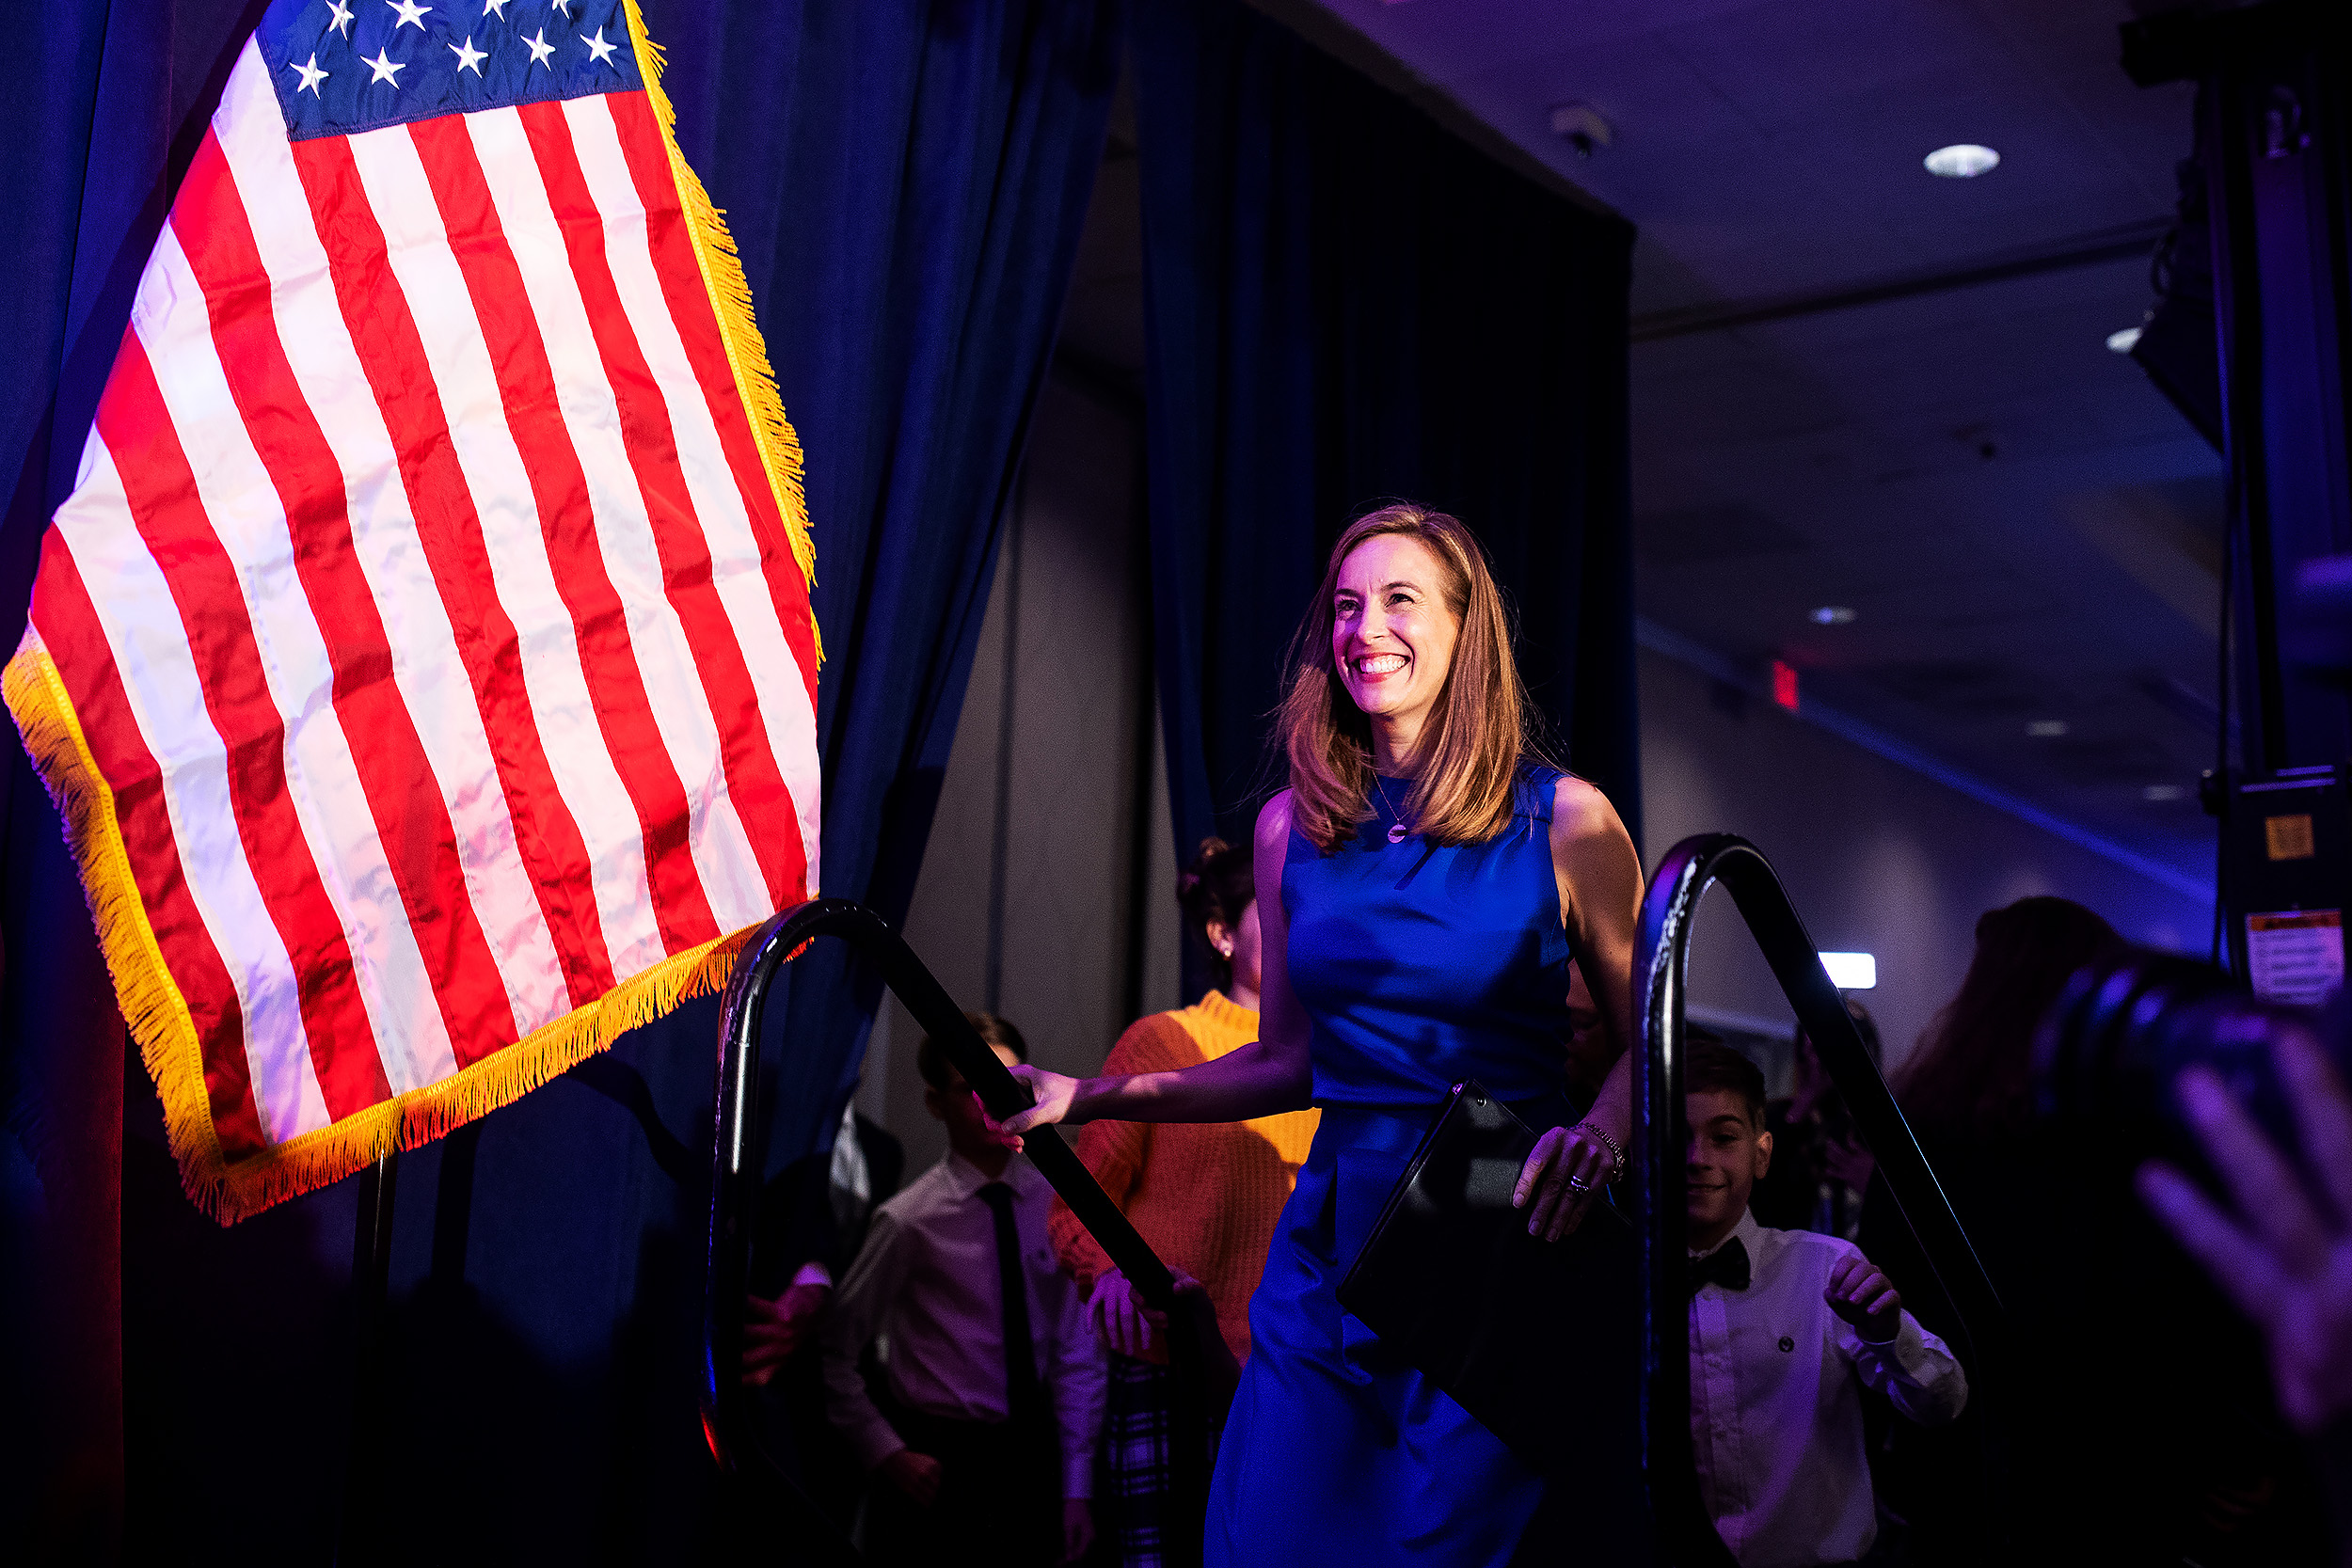 Democratic Candidate for New Jersey's 11th congressional District Mikie Sherrill celebrate at a watch party in Parsippany, New Jersey.